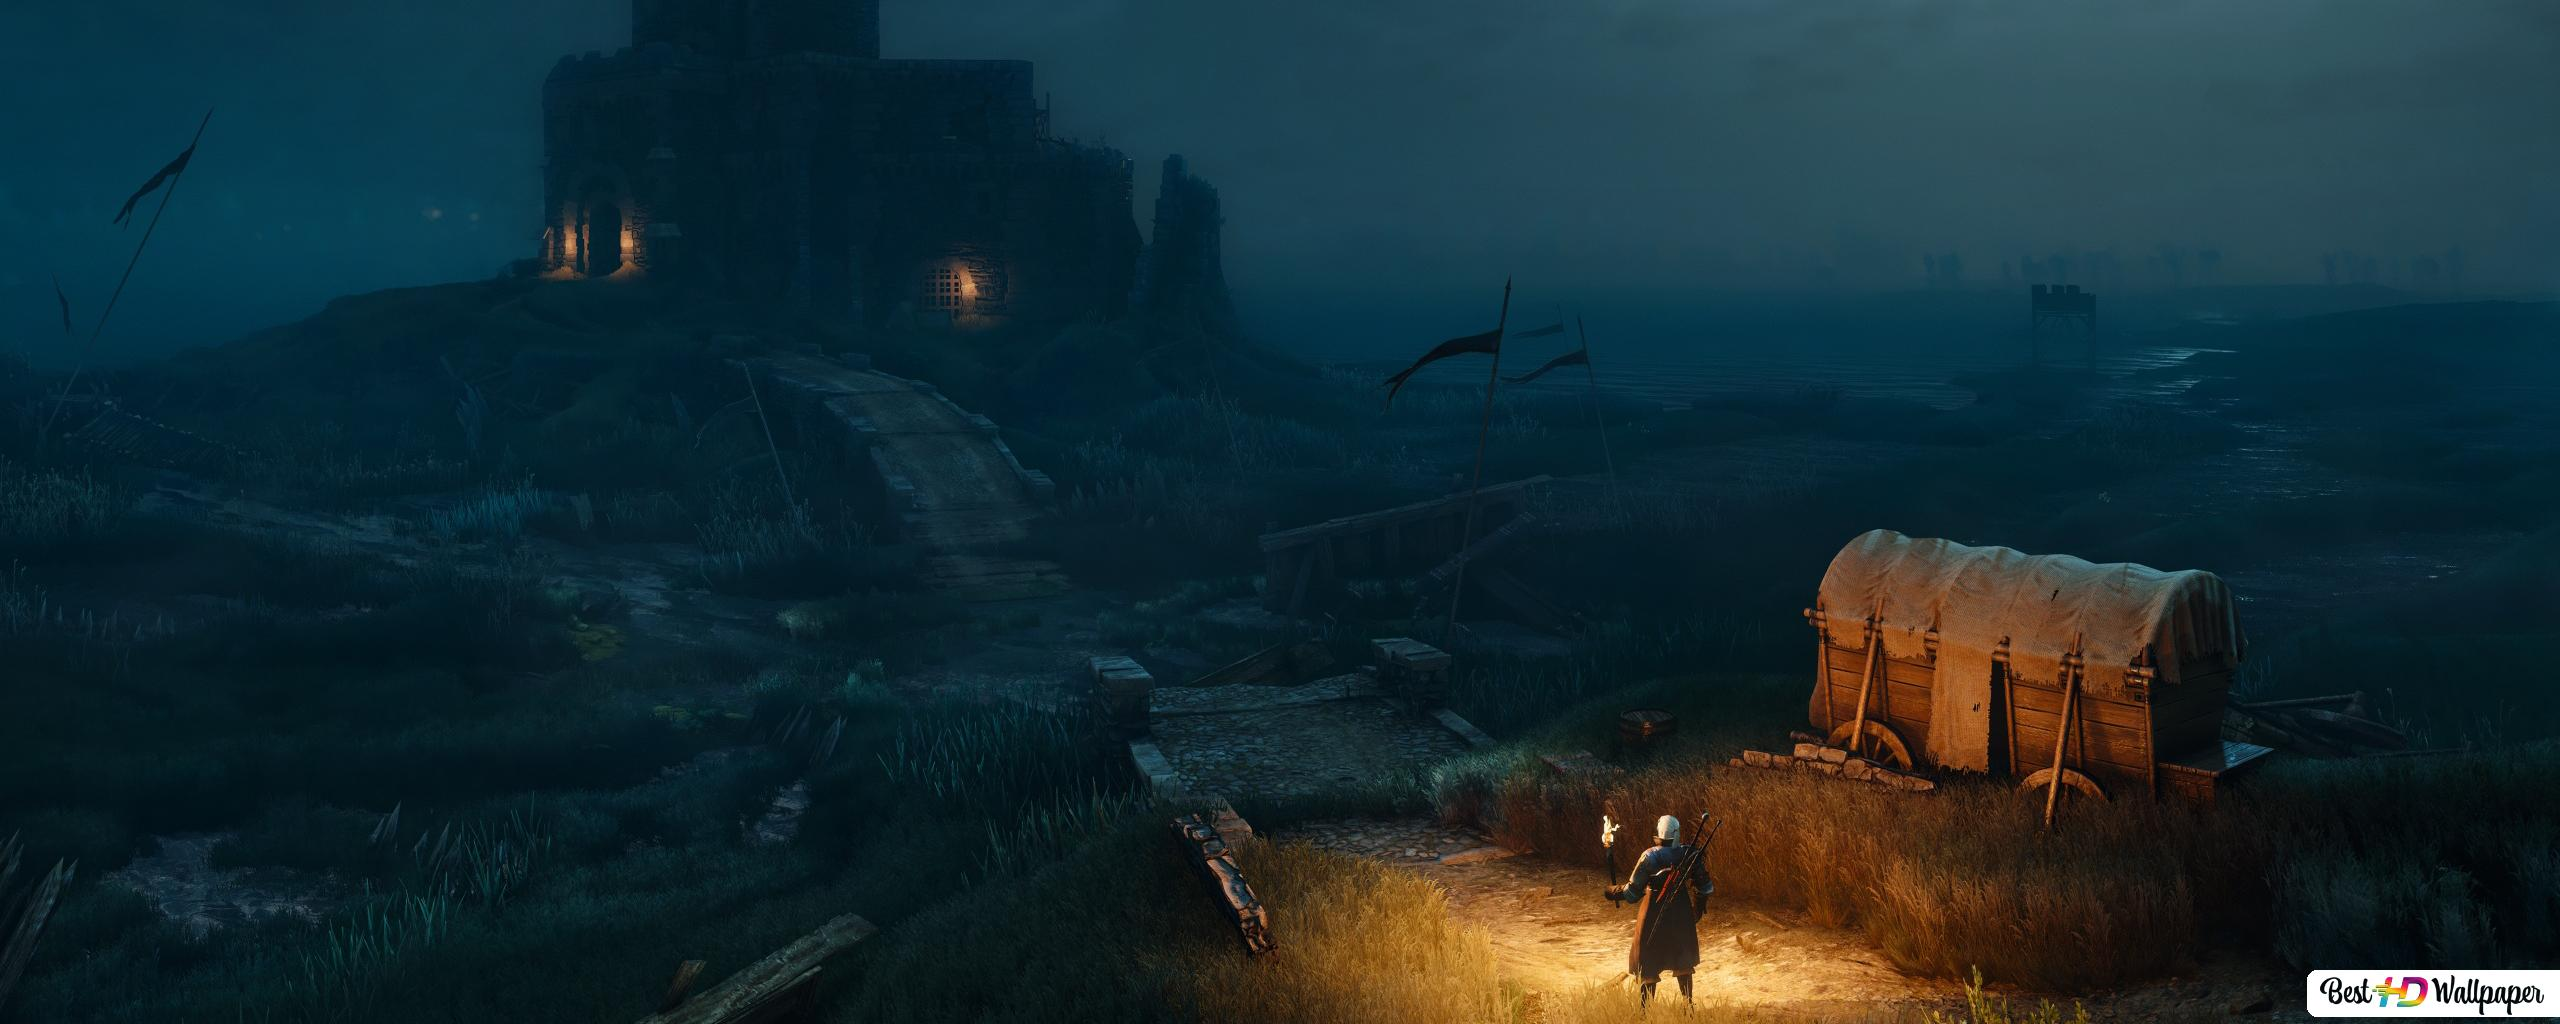 The Witcher 3 Wild Hunt Castle Hd Wallpaper Download